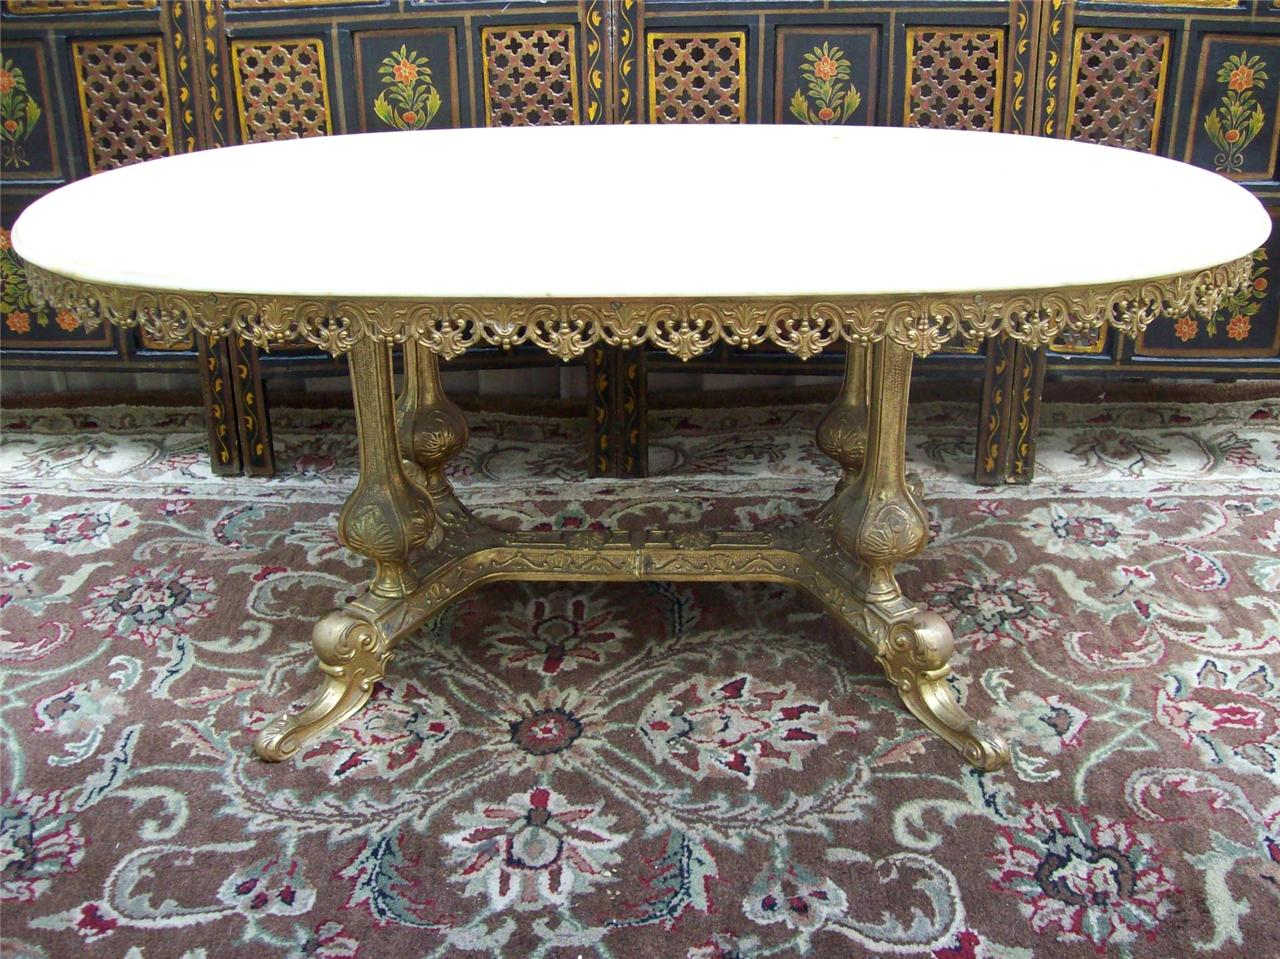 FRENCH PROVINCIAL STYLE MARBLE ORNATE BRASS GOLD OVAL COFFEE TABLE